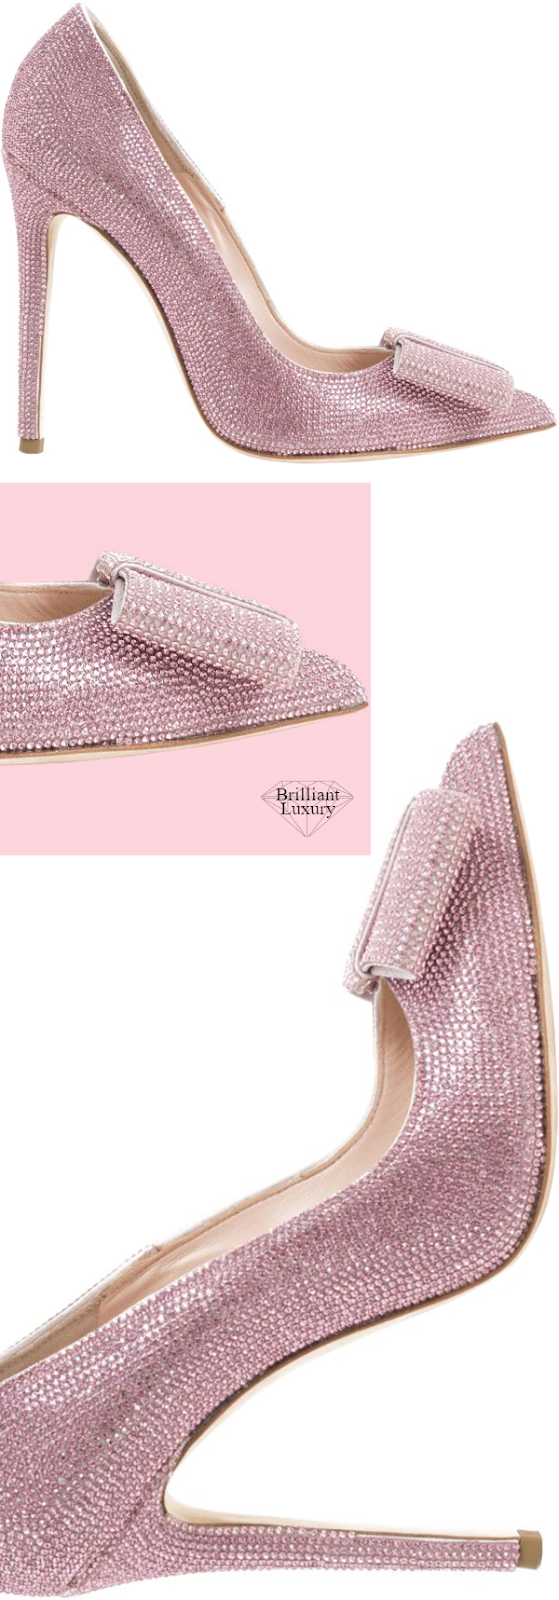 Brilliant-Luxury-Gedebe-Glittered-Pink-Strass-Bow-Pumps-shoes-accessories-2019